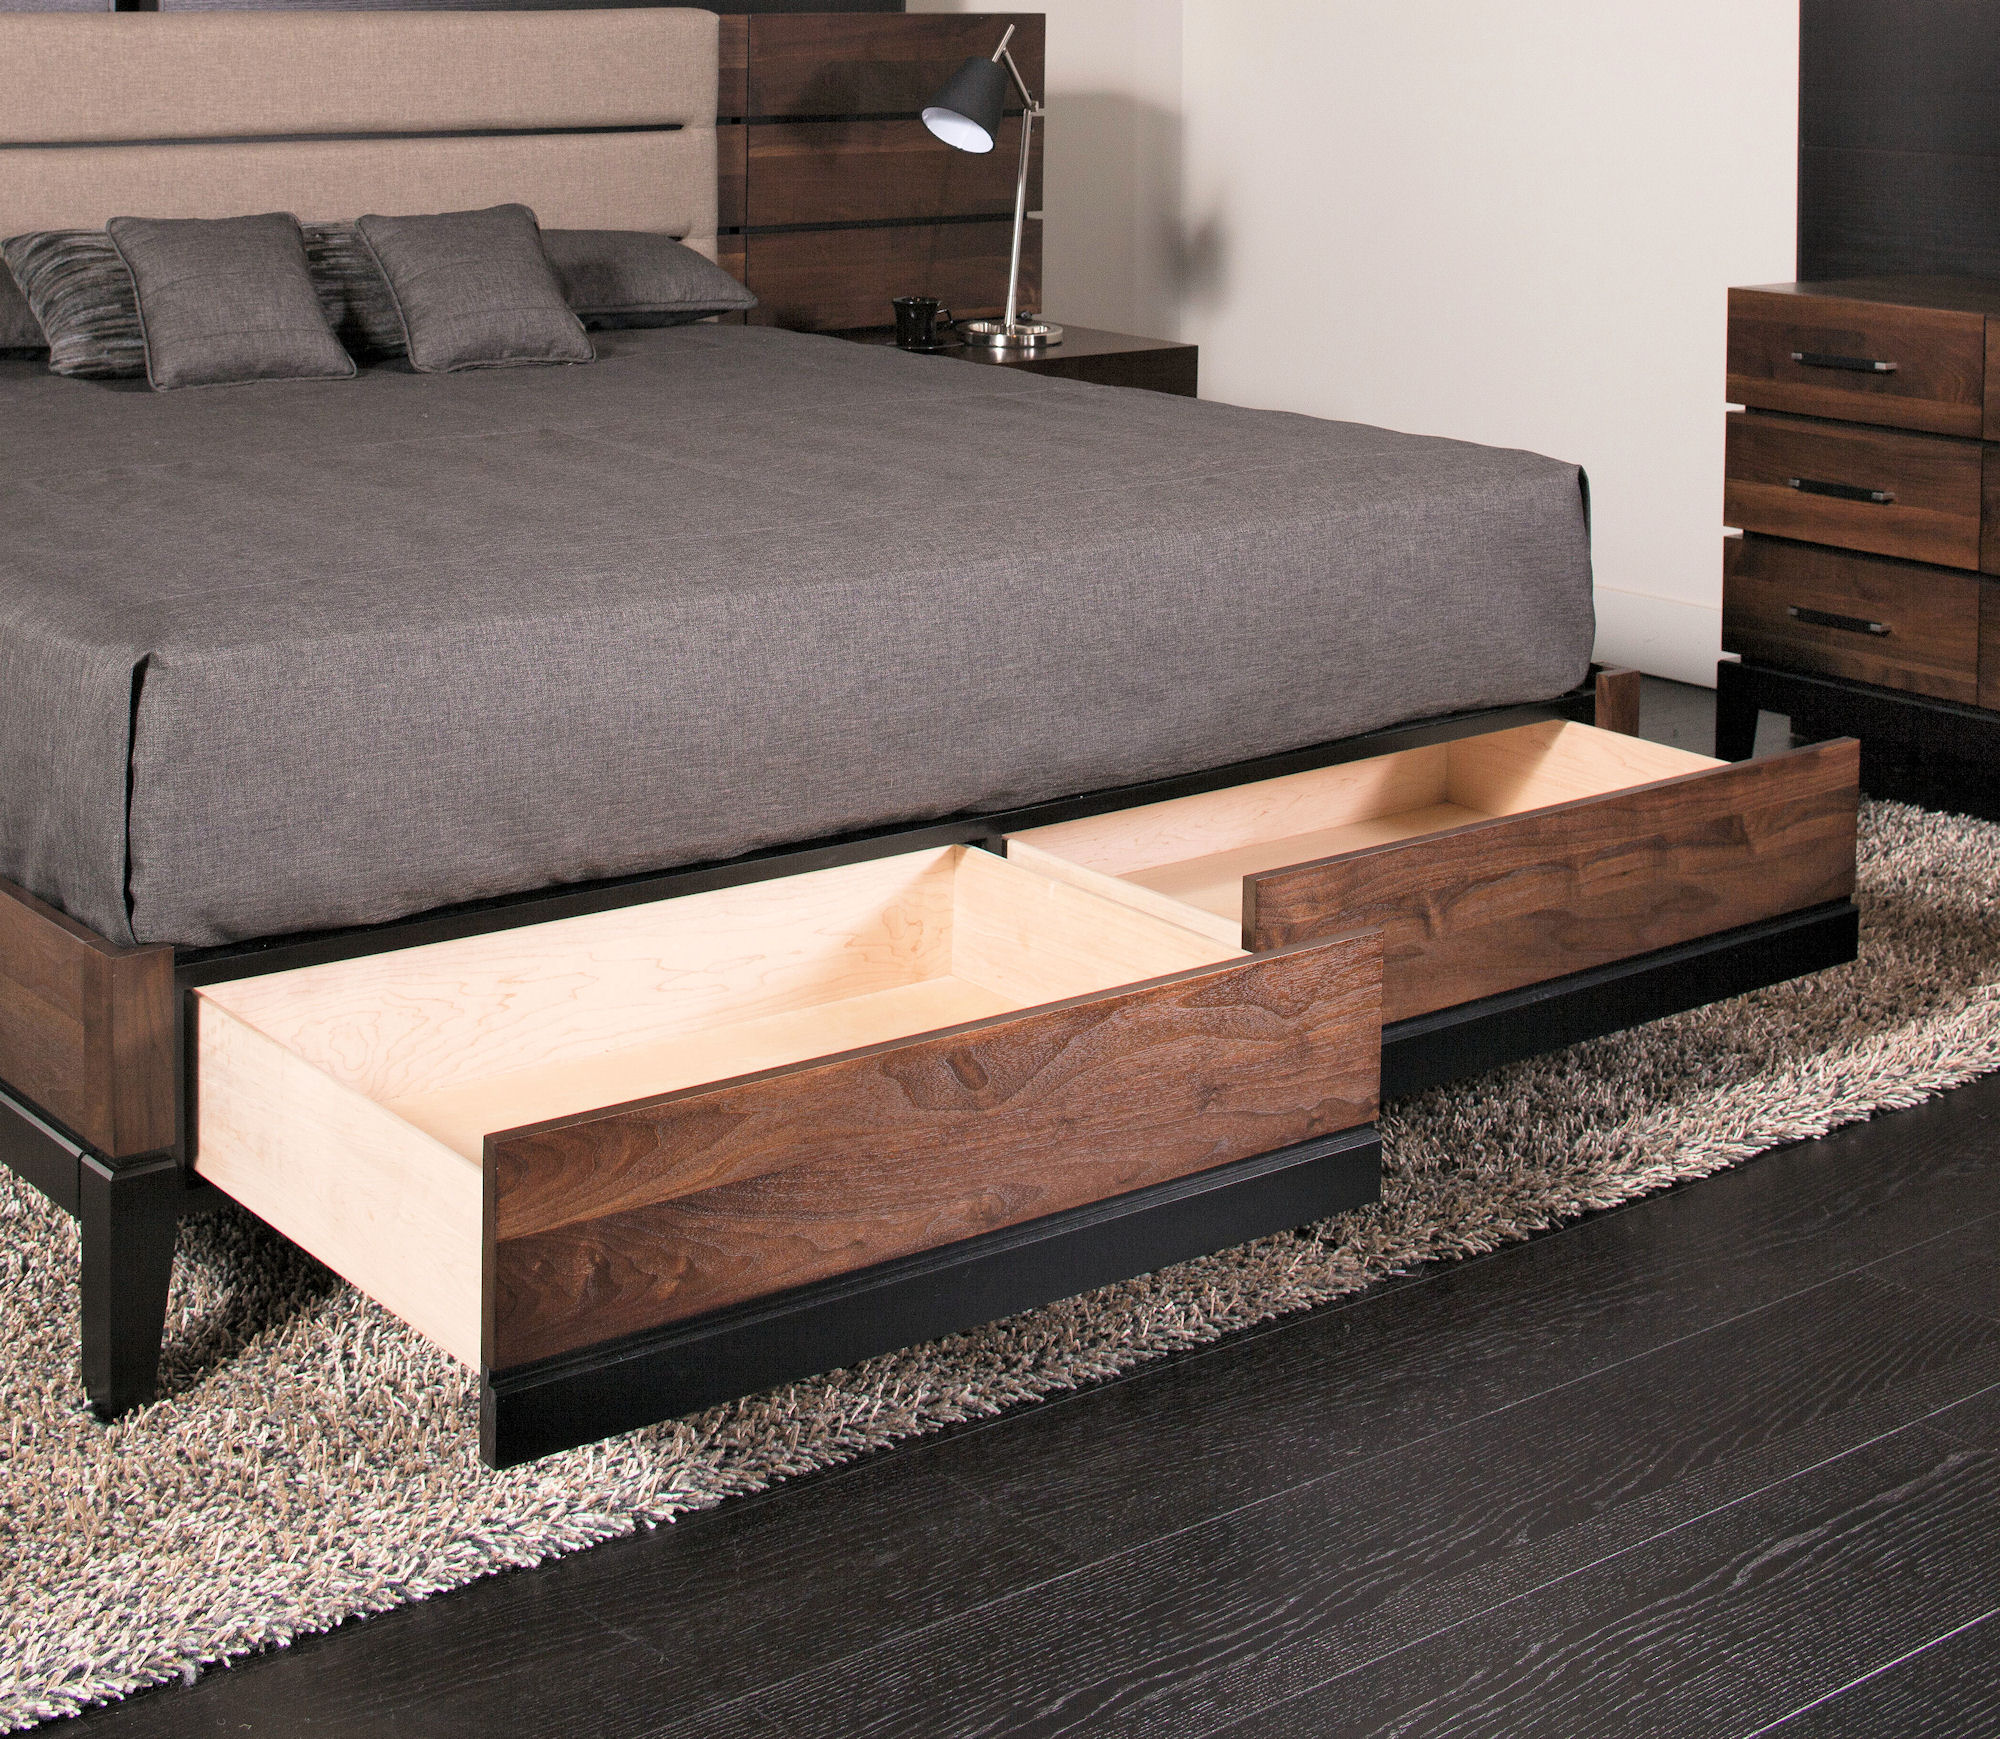 Upholstered panel beds with storage drawers for Upholstered bed with drawers